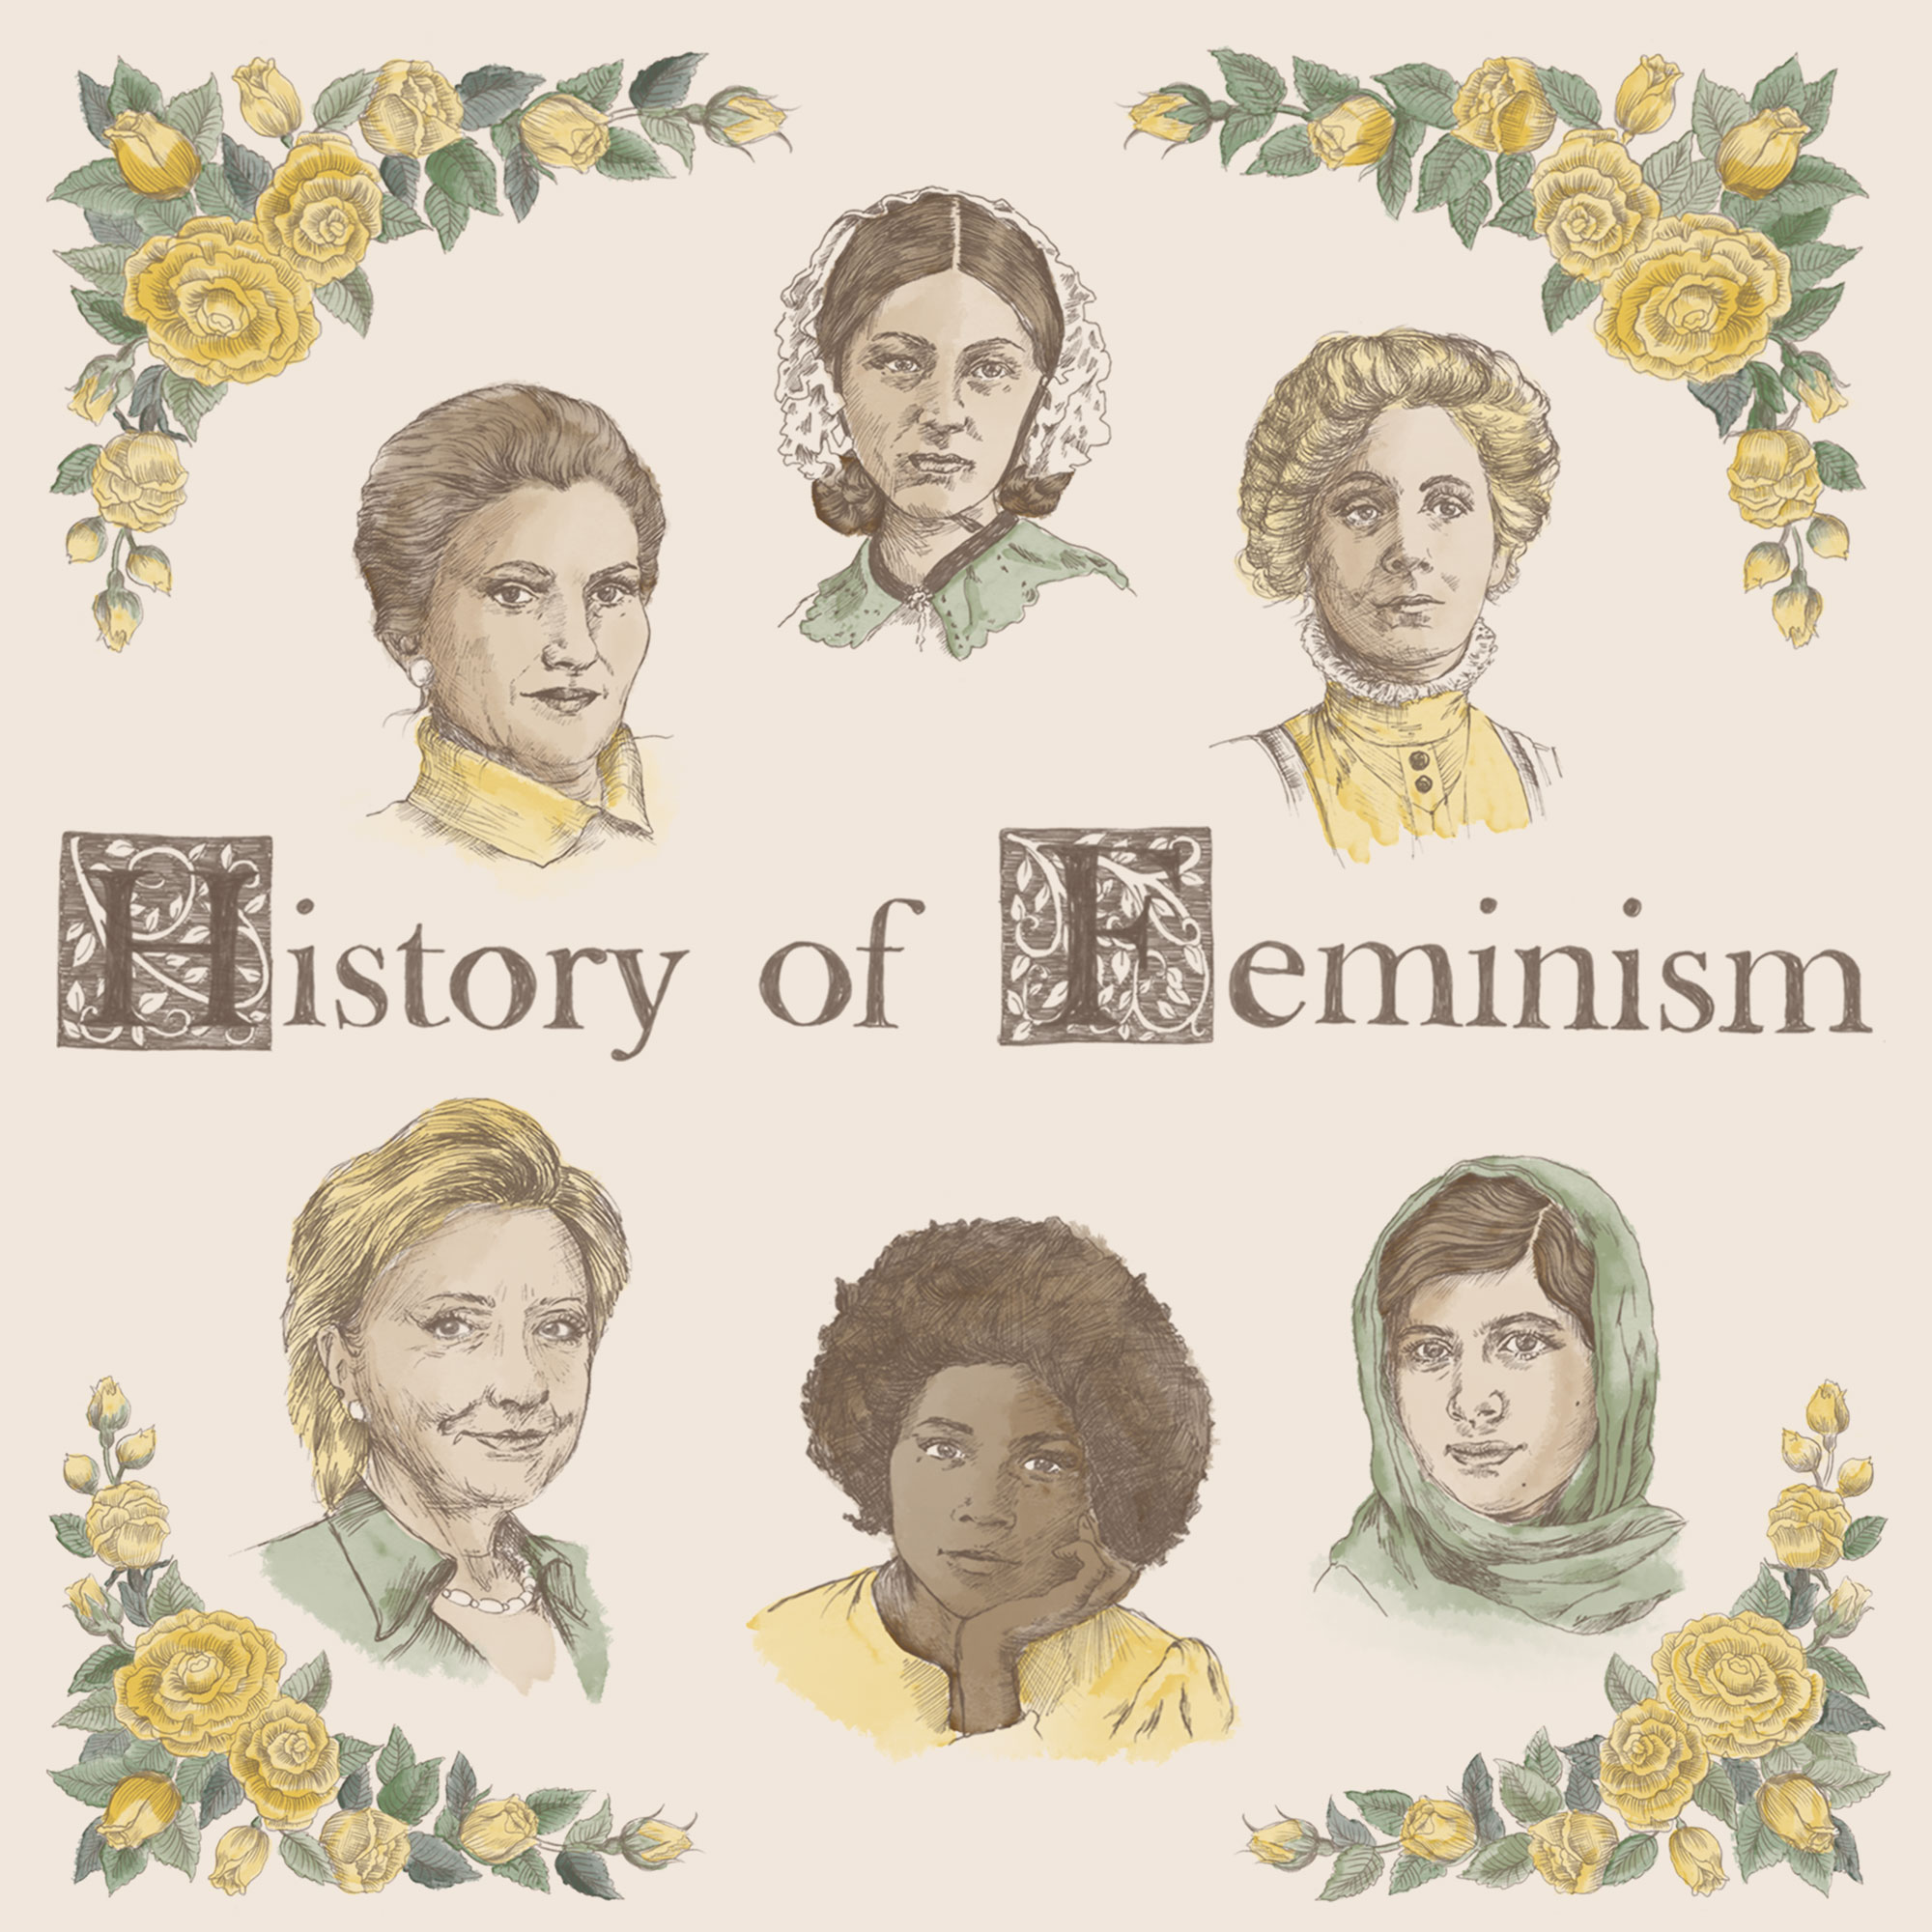 history of feminism poster